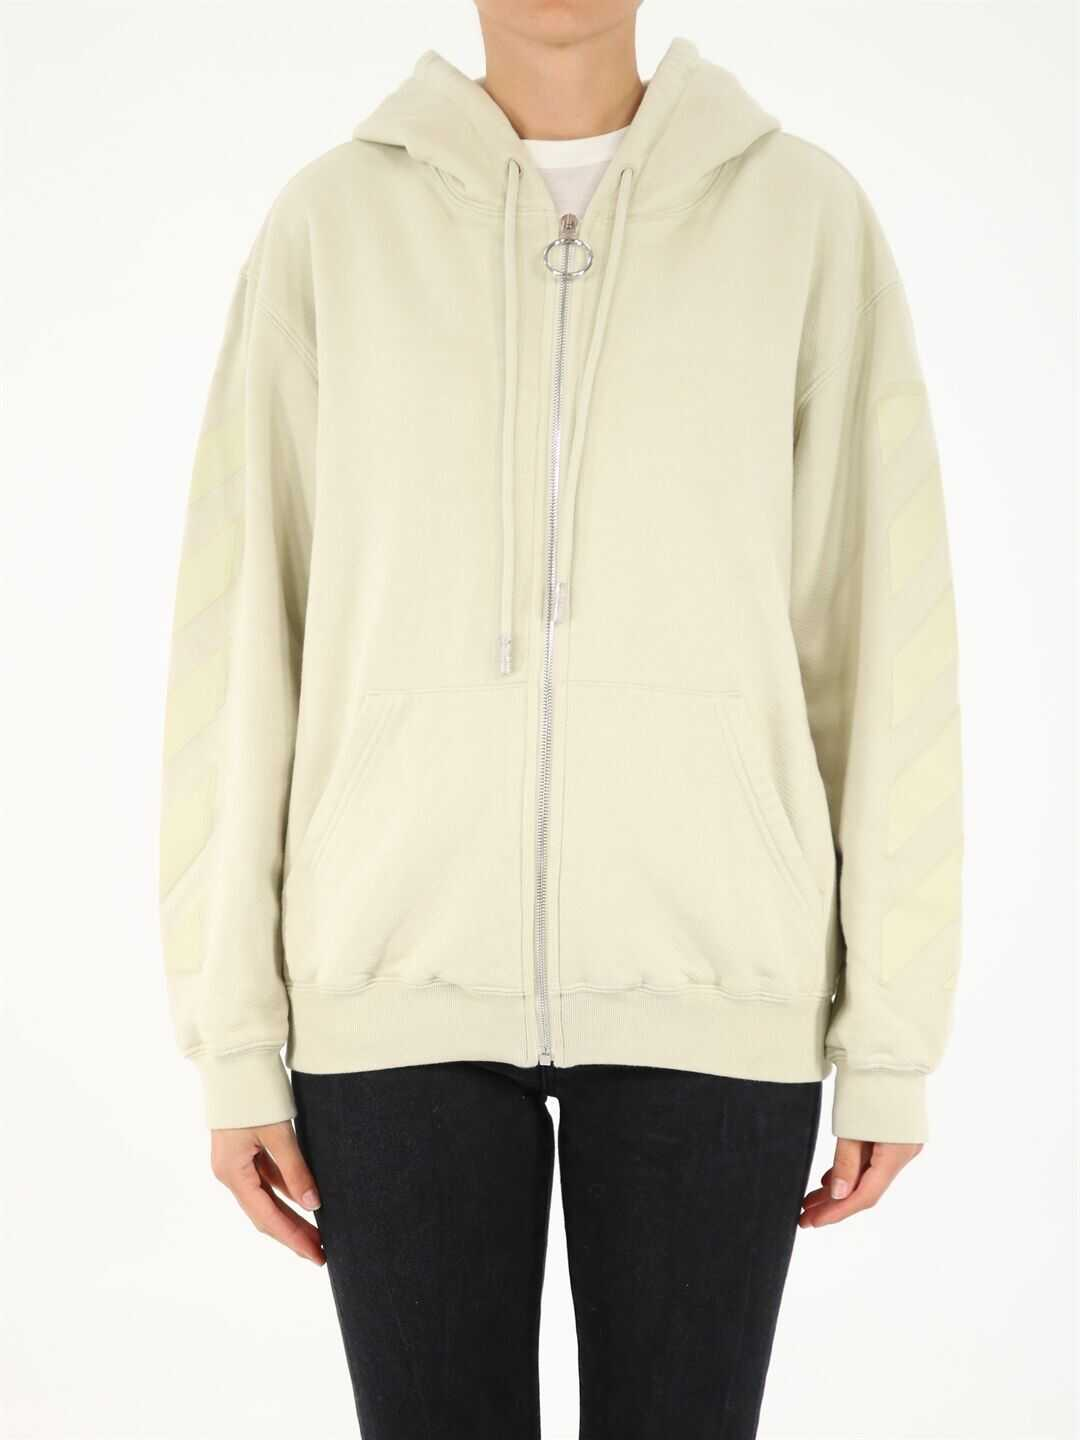 Off-White Hoodie With Arrows OWBE005F21JER001 N/A image0